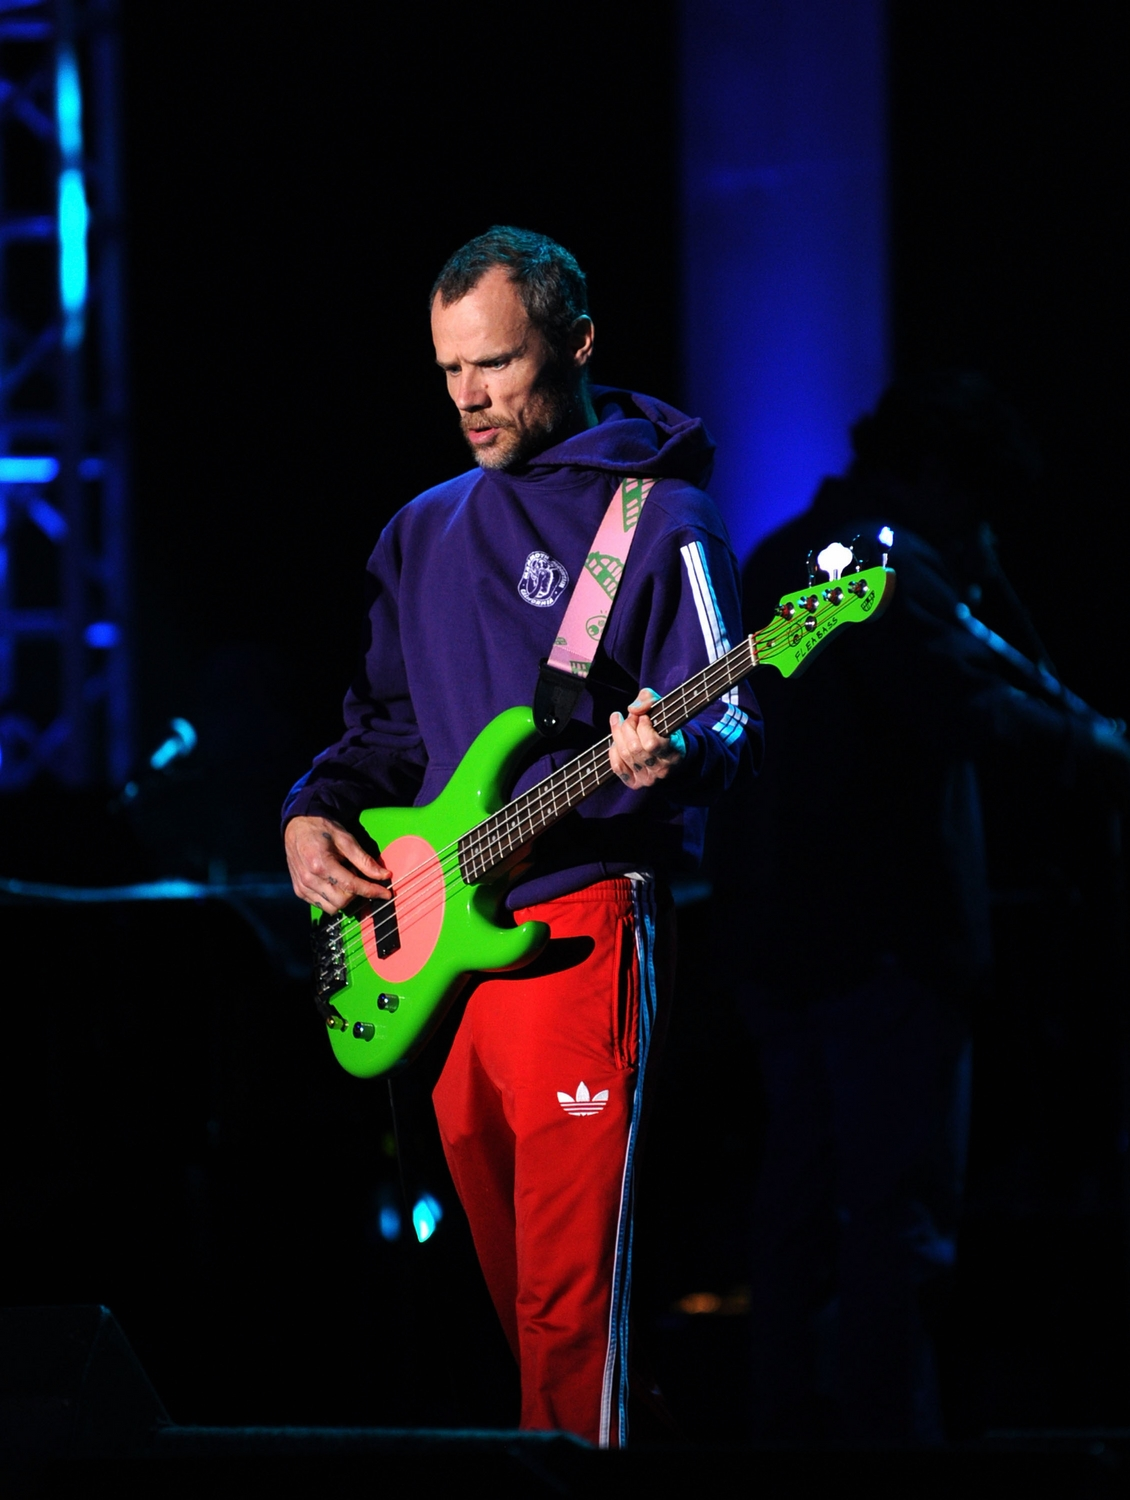 MusiCares 2010 | Red Hot Chili Peppers fansite, news and ...